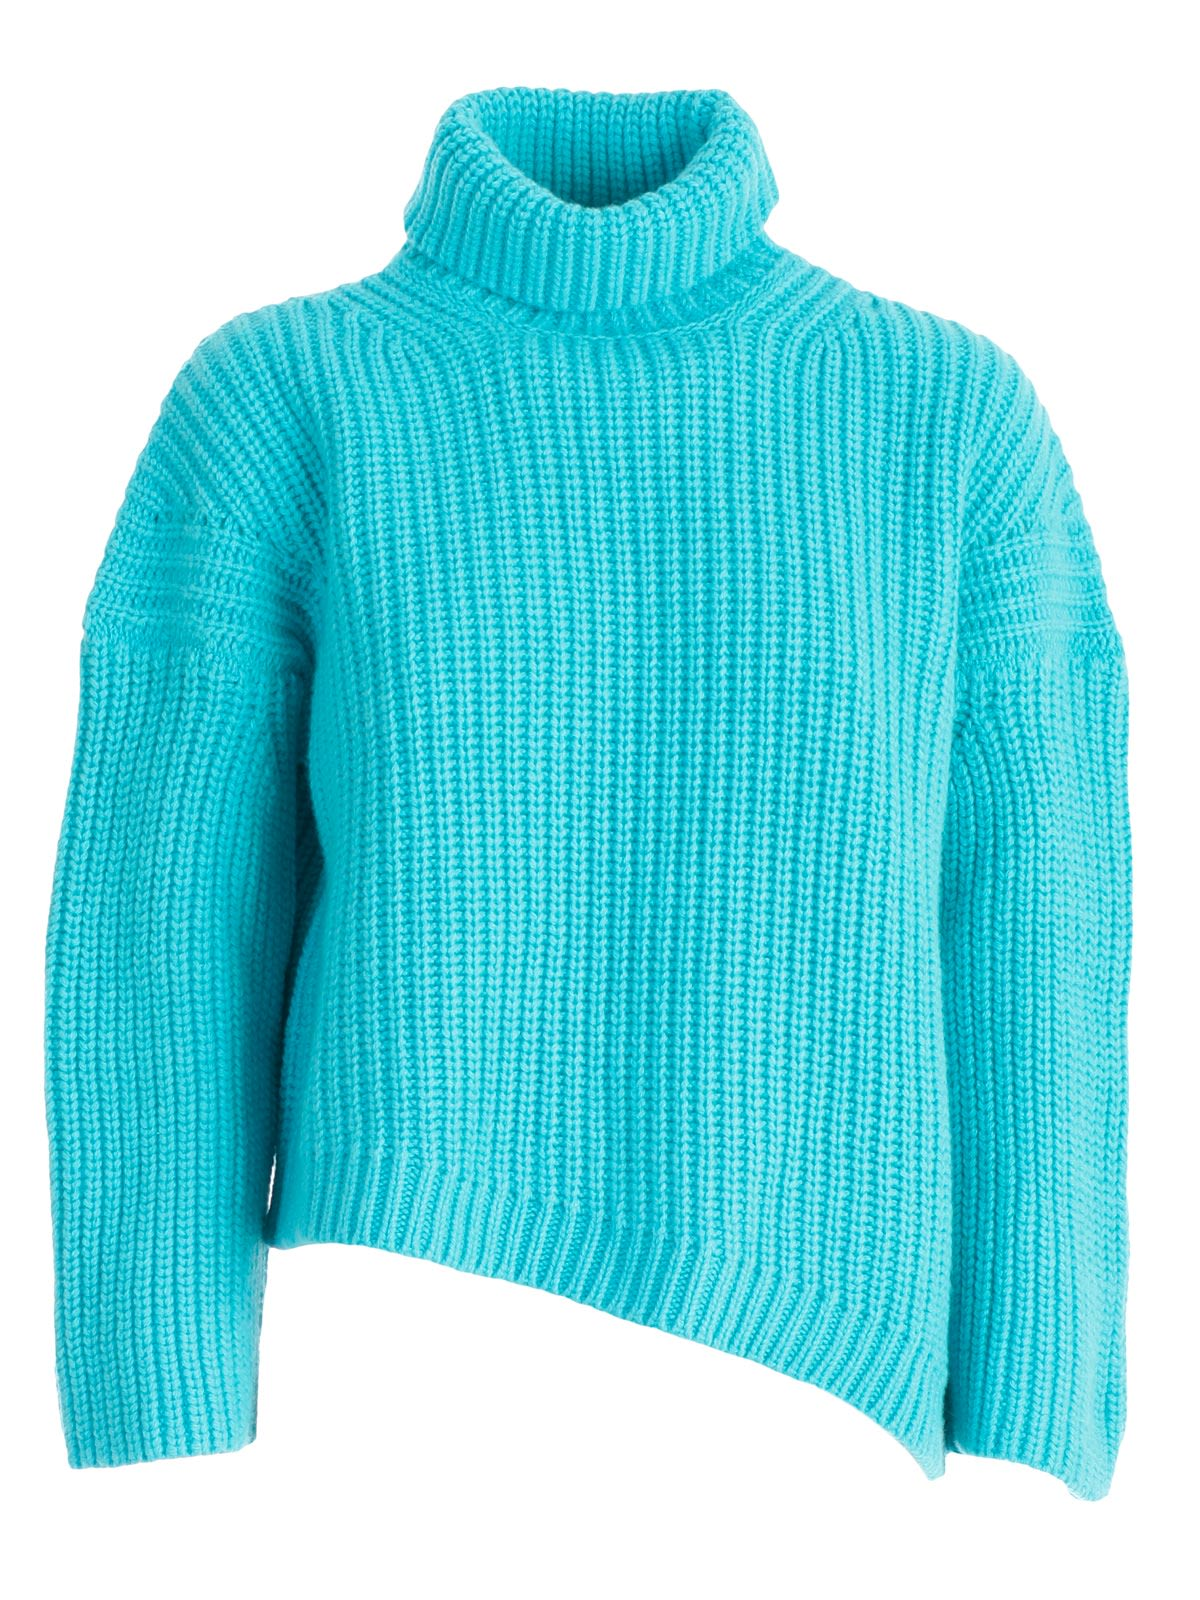 Department 5 DEPARTMENT FIVE CROPPED SWEATER